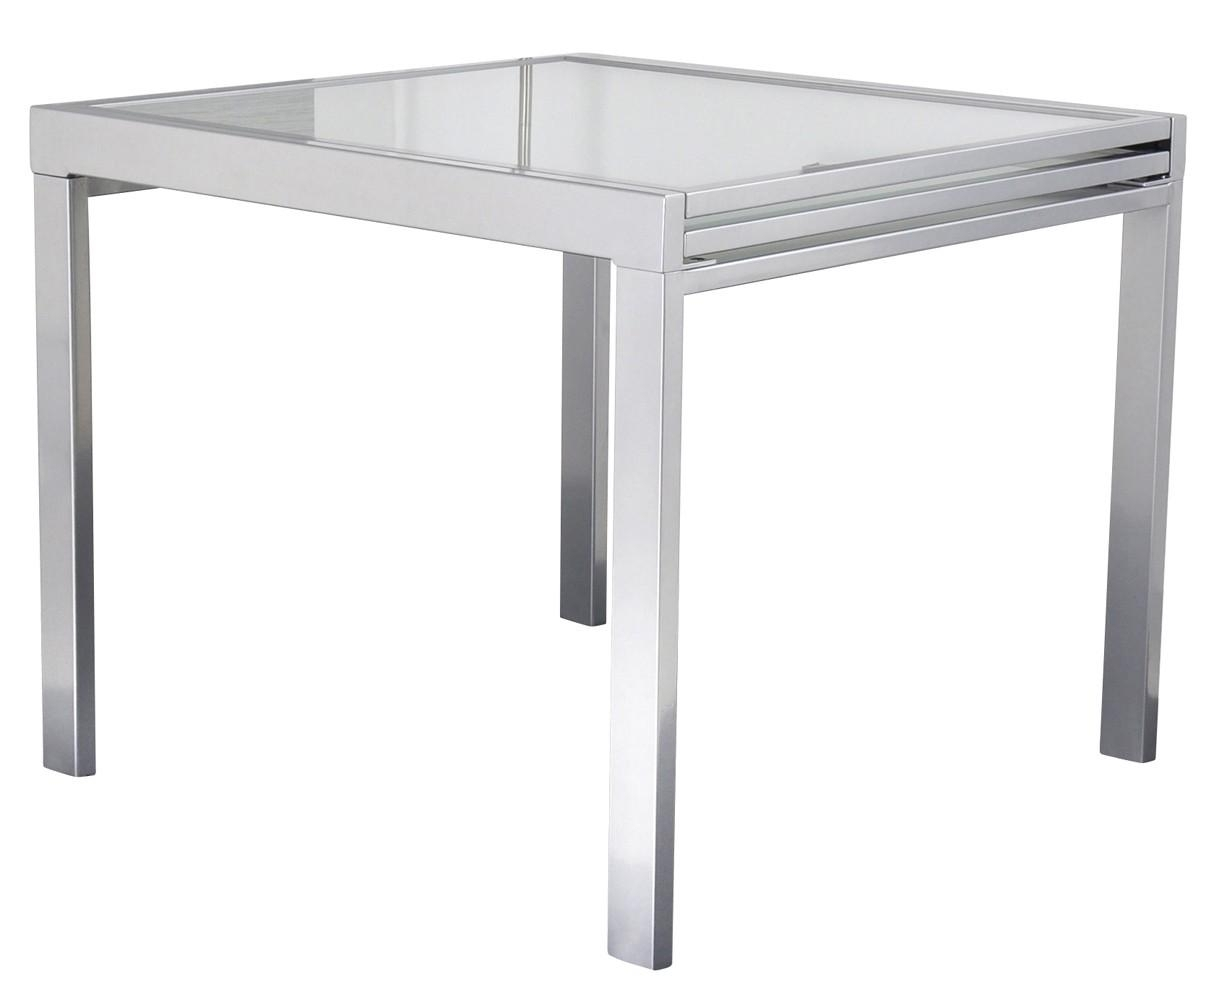 Les tendances table carr e extensible grise - Table de jardin carree extensible ...